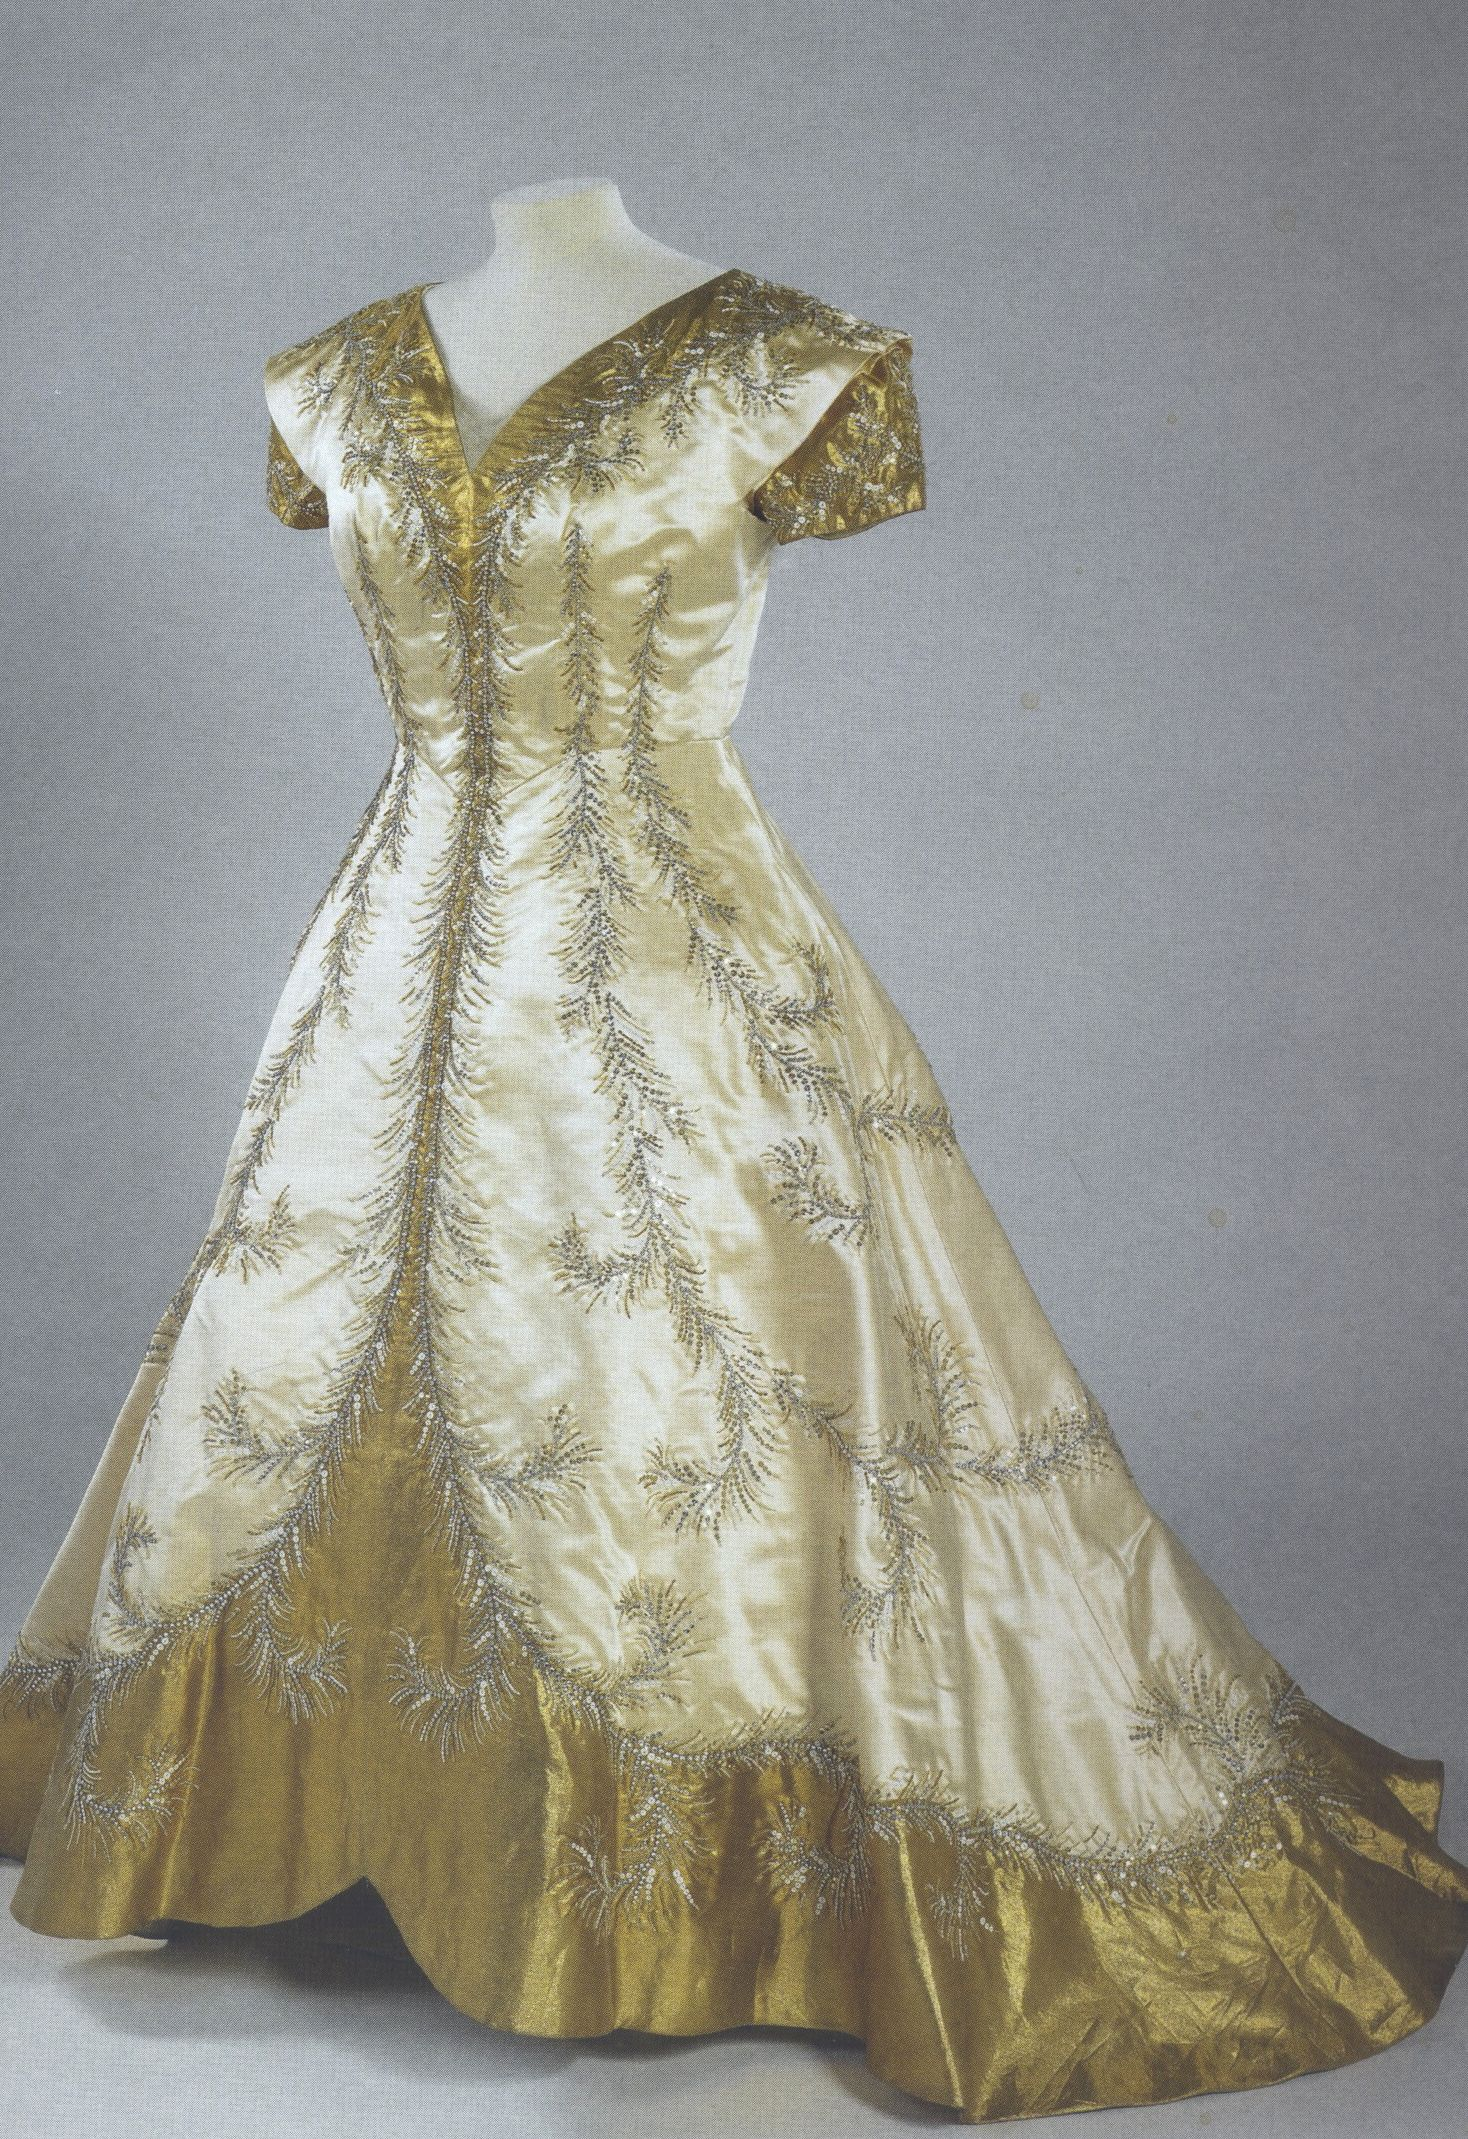 376ef1429159 Norman Hartnell dress worn by Queen Elizabeth The Queen Mother for the  Coronation